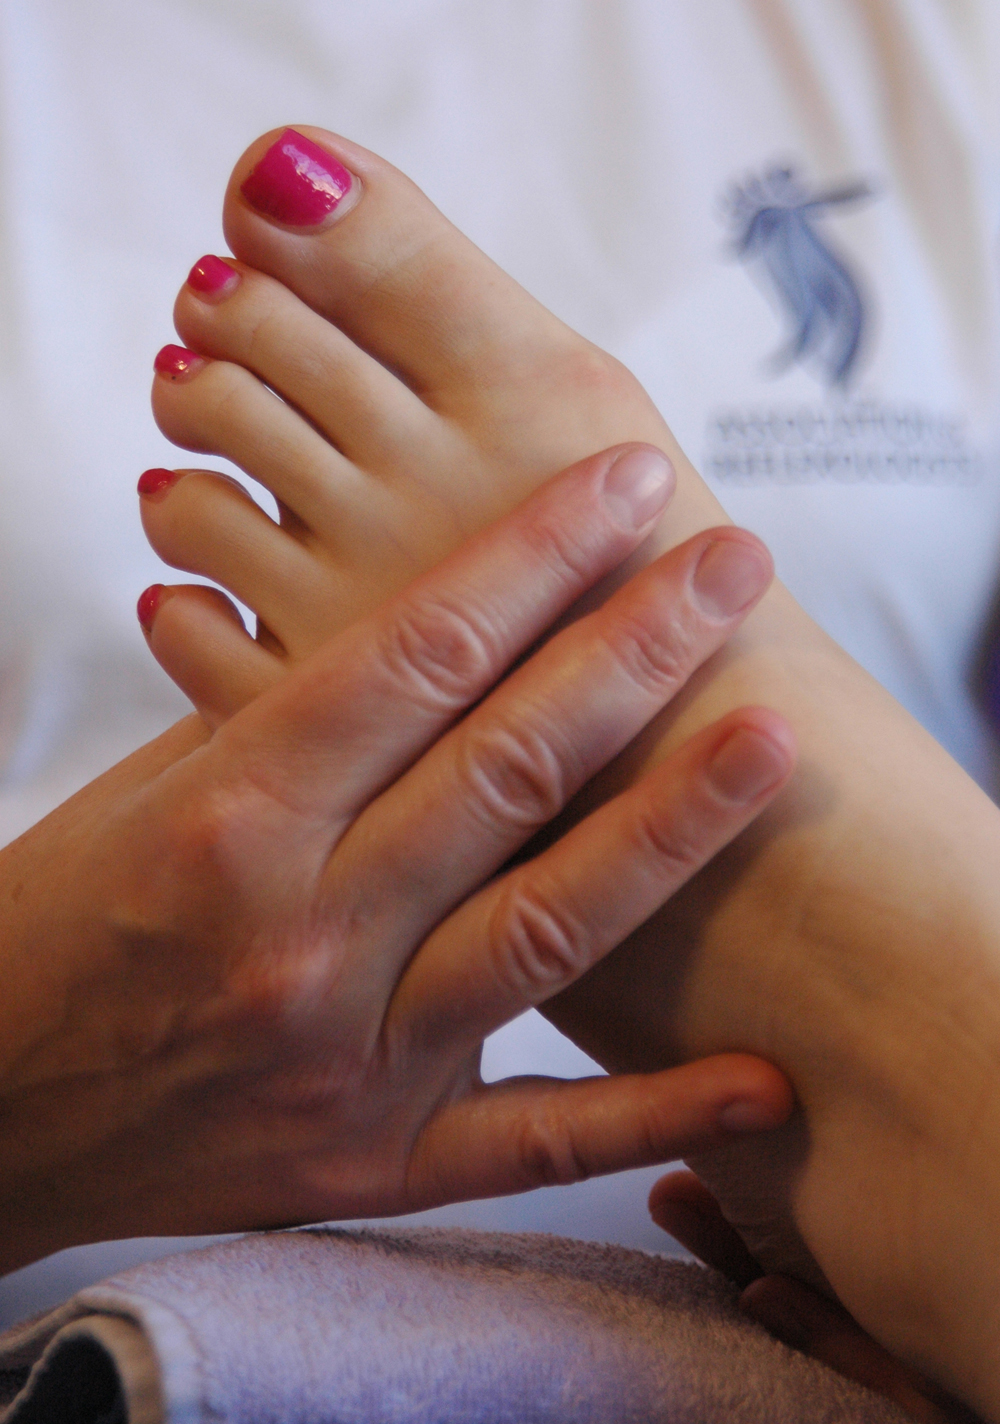 Association of Reflexology